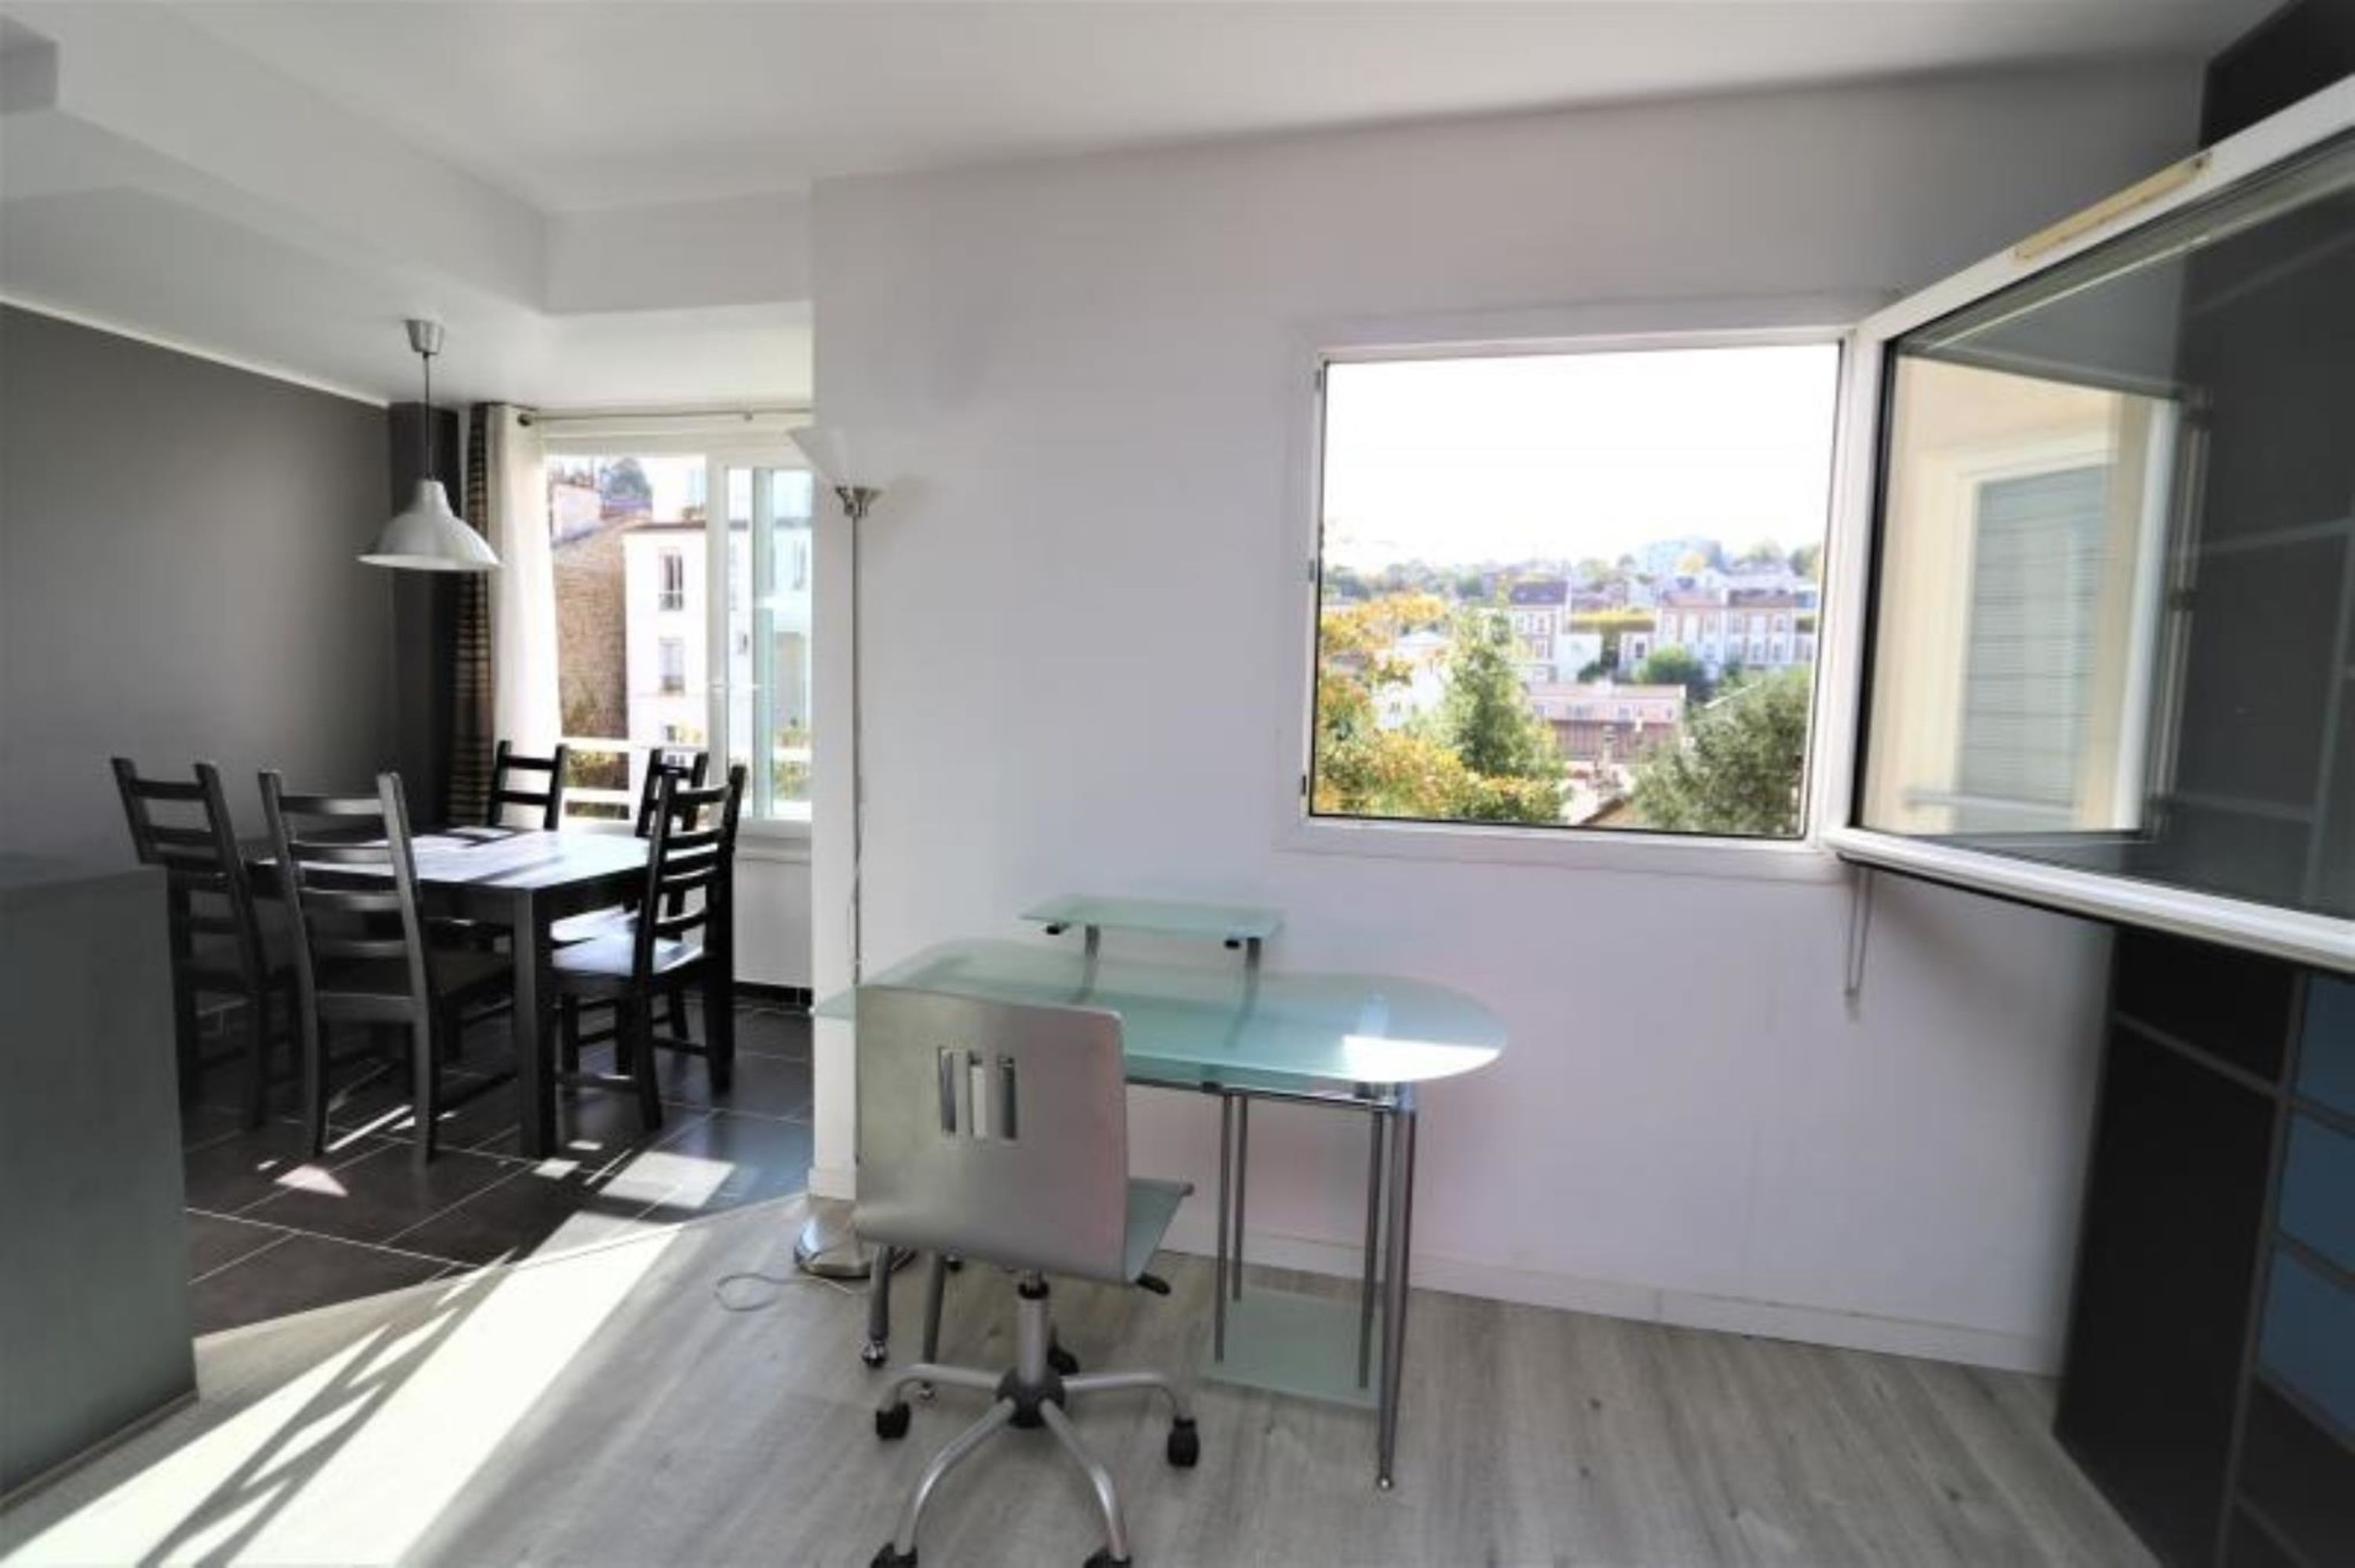 agence immobilière sevres 92 le chesnay 78 achat vente location appartement maison immobilier LMHT ANF DXDAMVCA